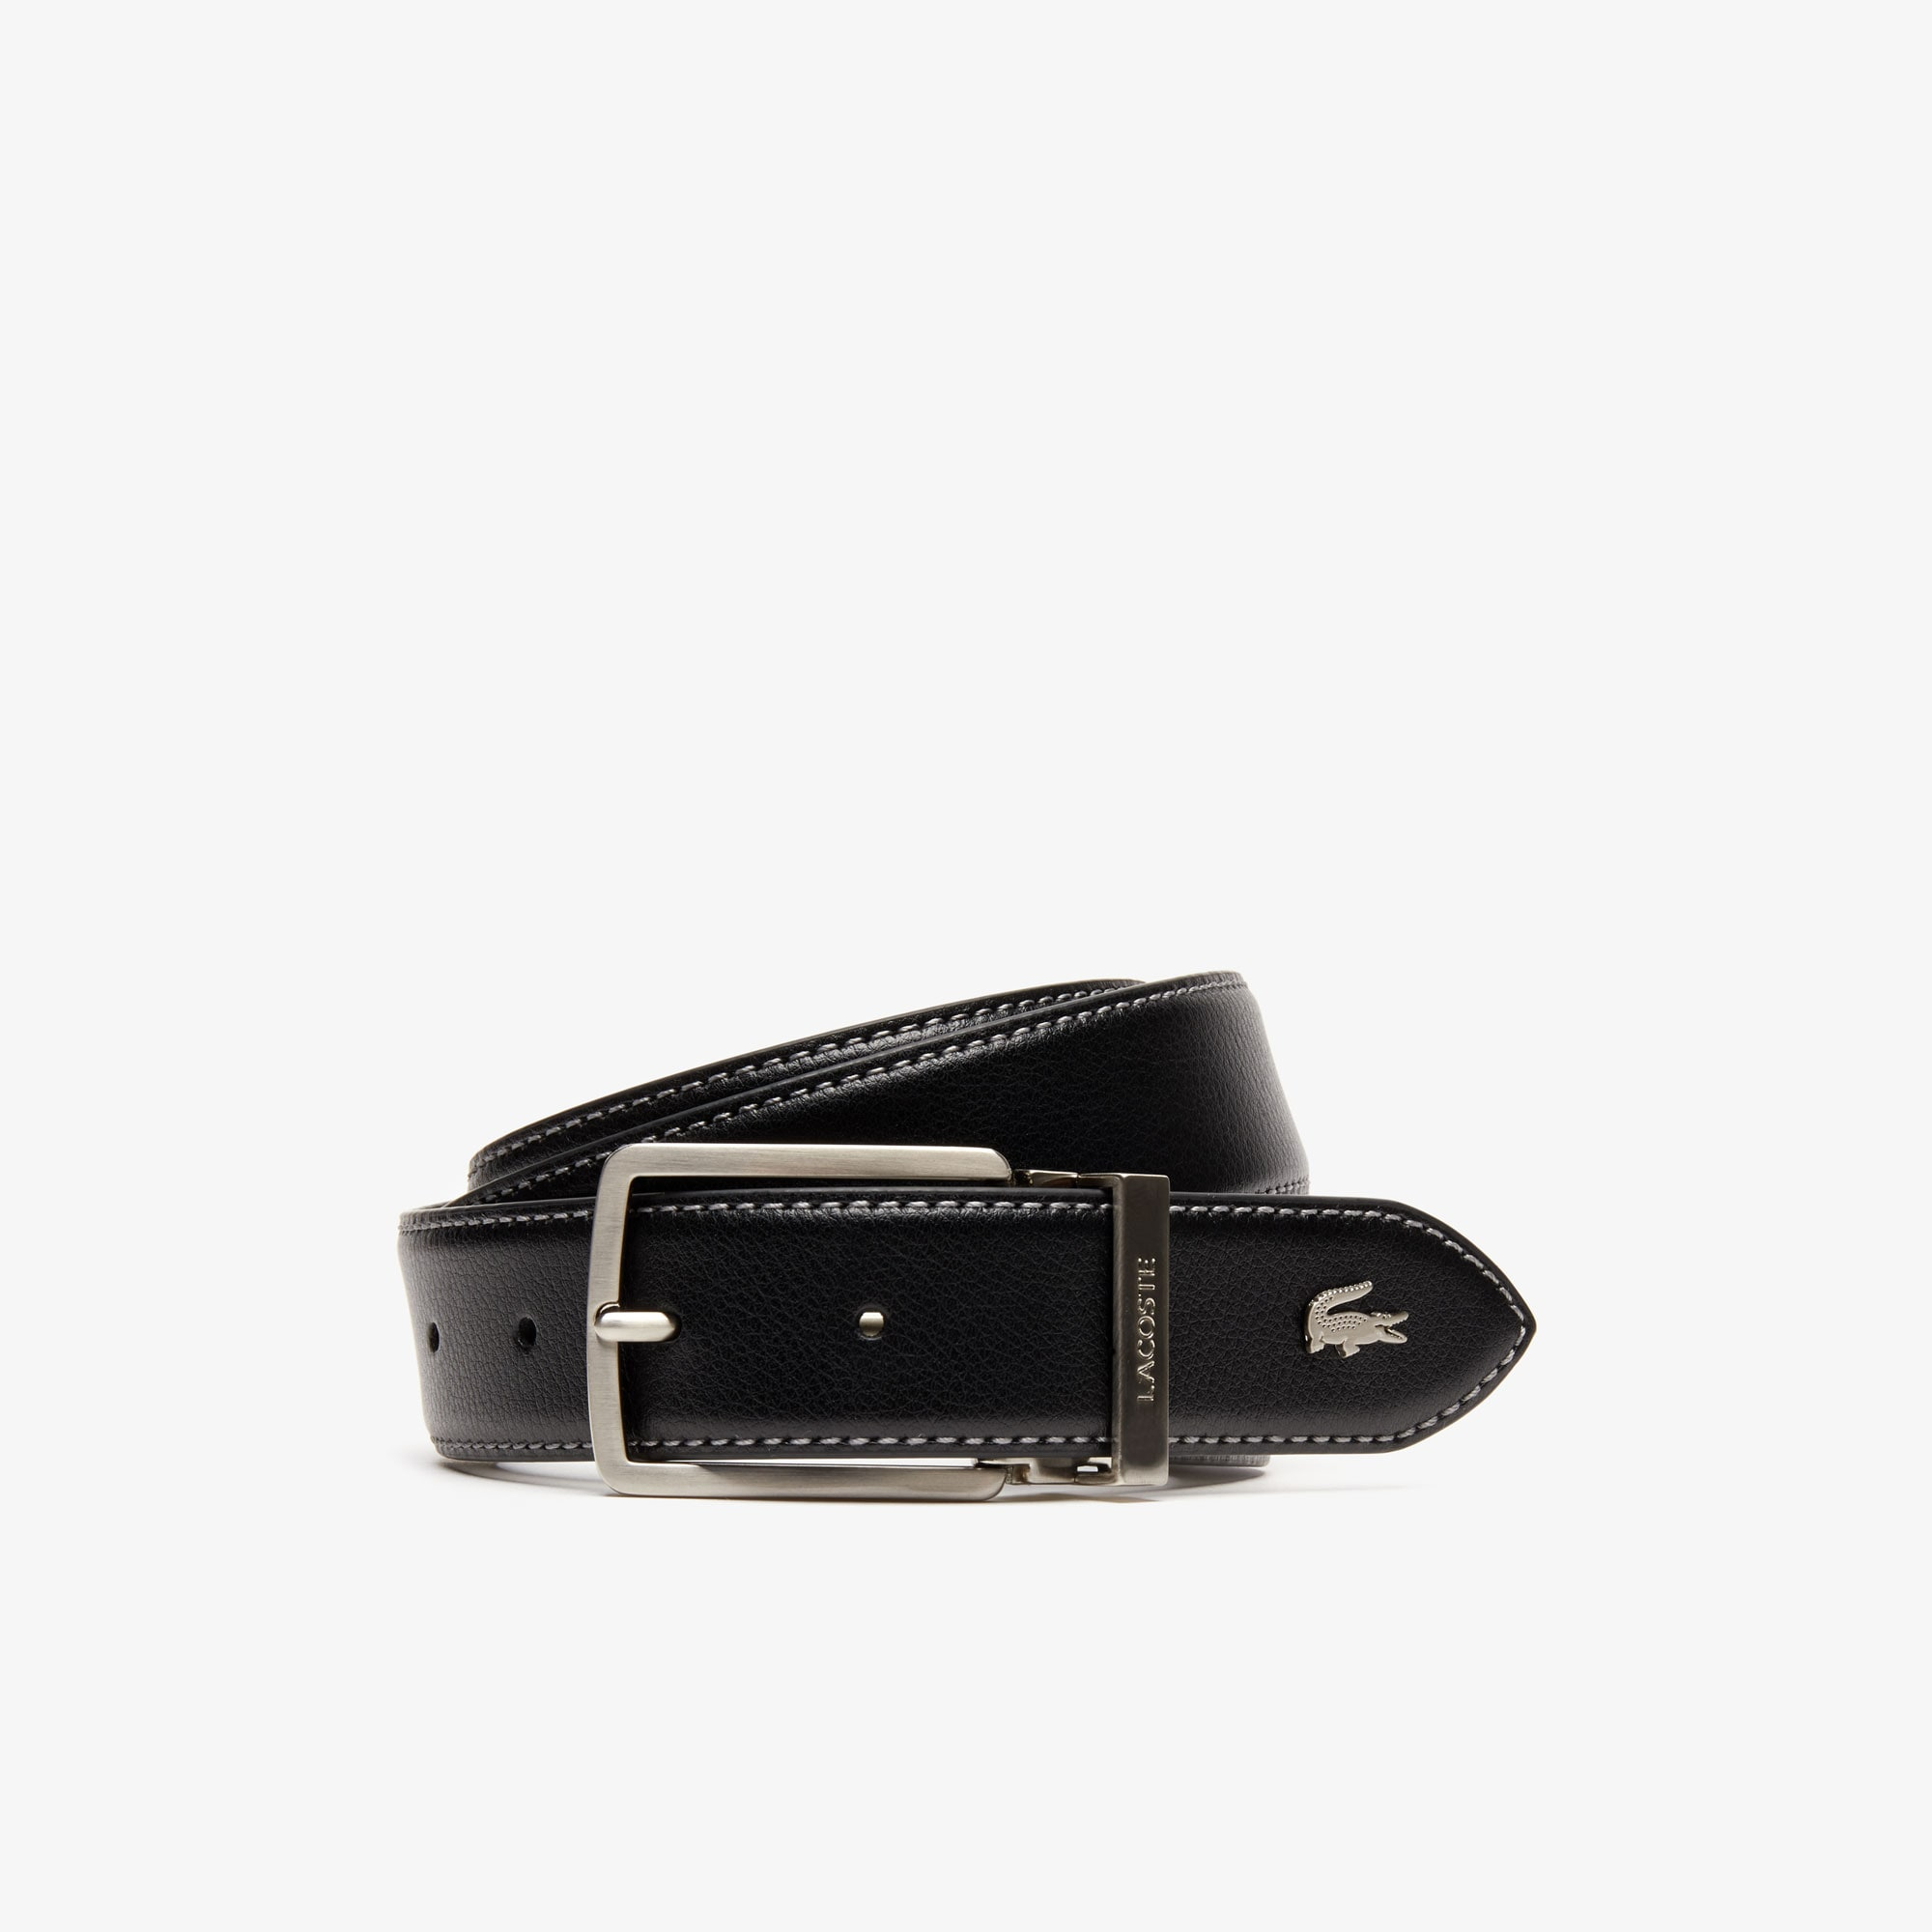 97d75673 Men's Wallets, Belts and Bags | Leather Goods | LACOSTE